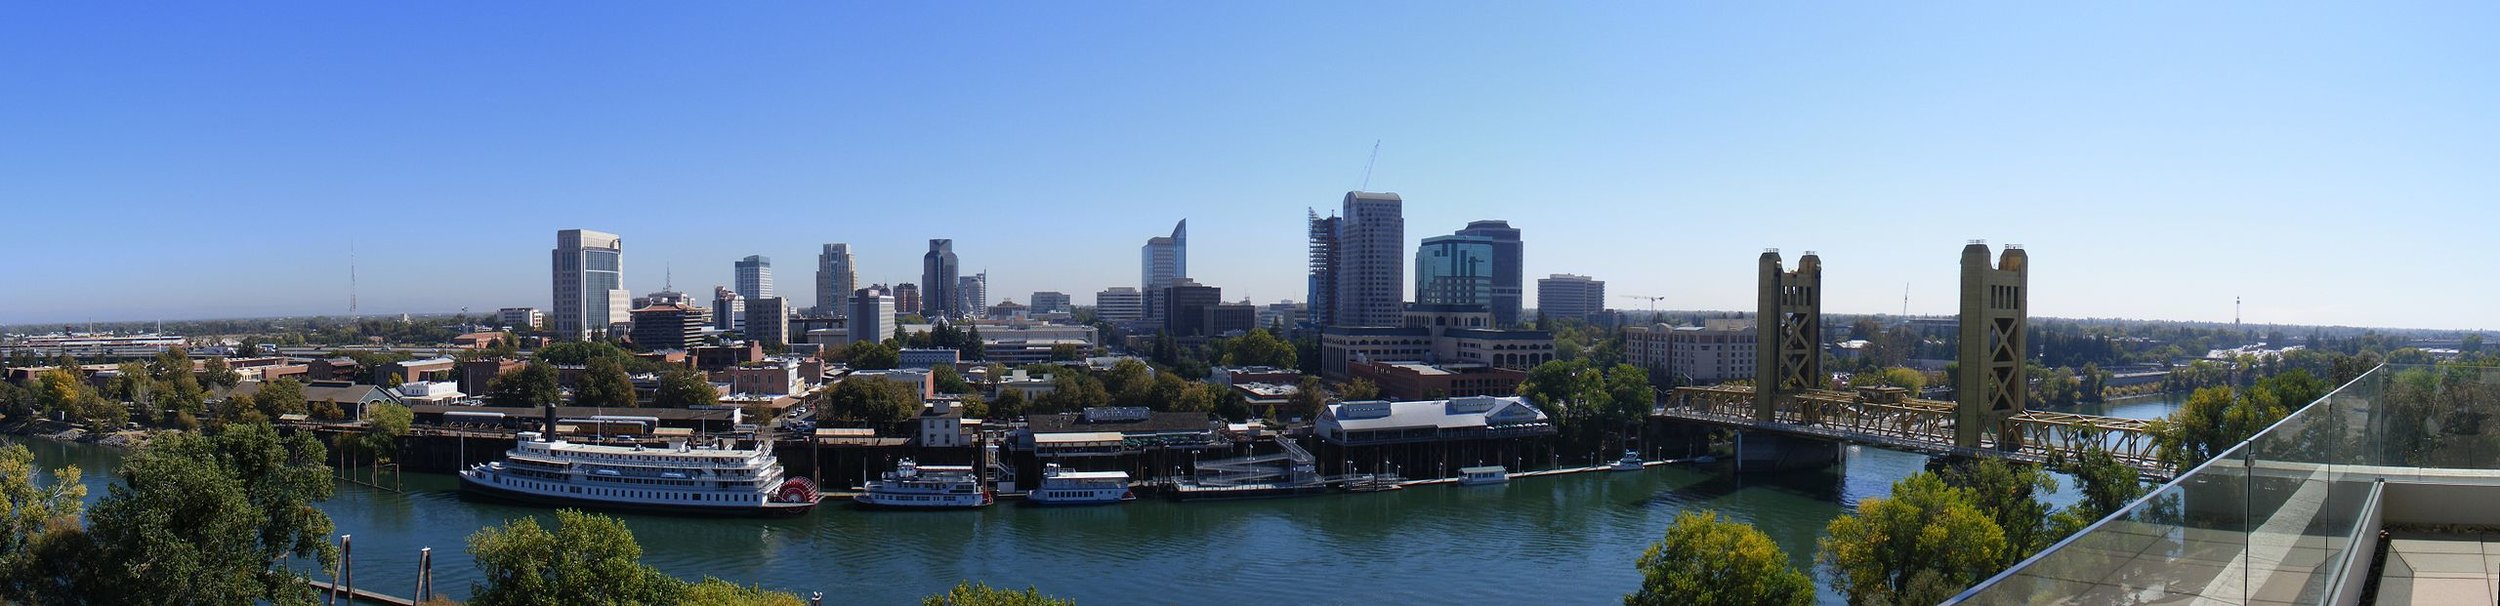 View of the Sacramento waterfront and downtown skyline. Photographer: SJ.smith - https://commons.wikimedia.org/w/index.php?curid=5007658